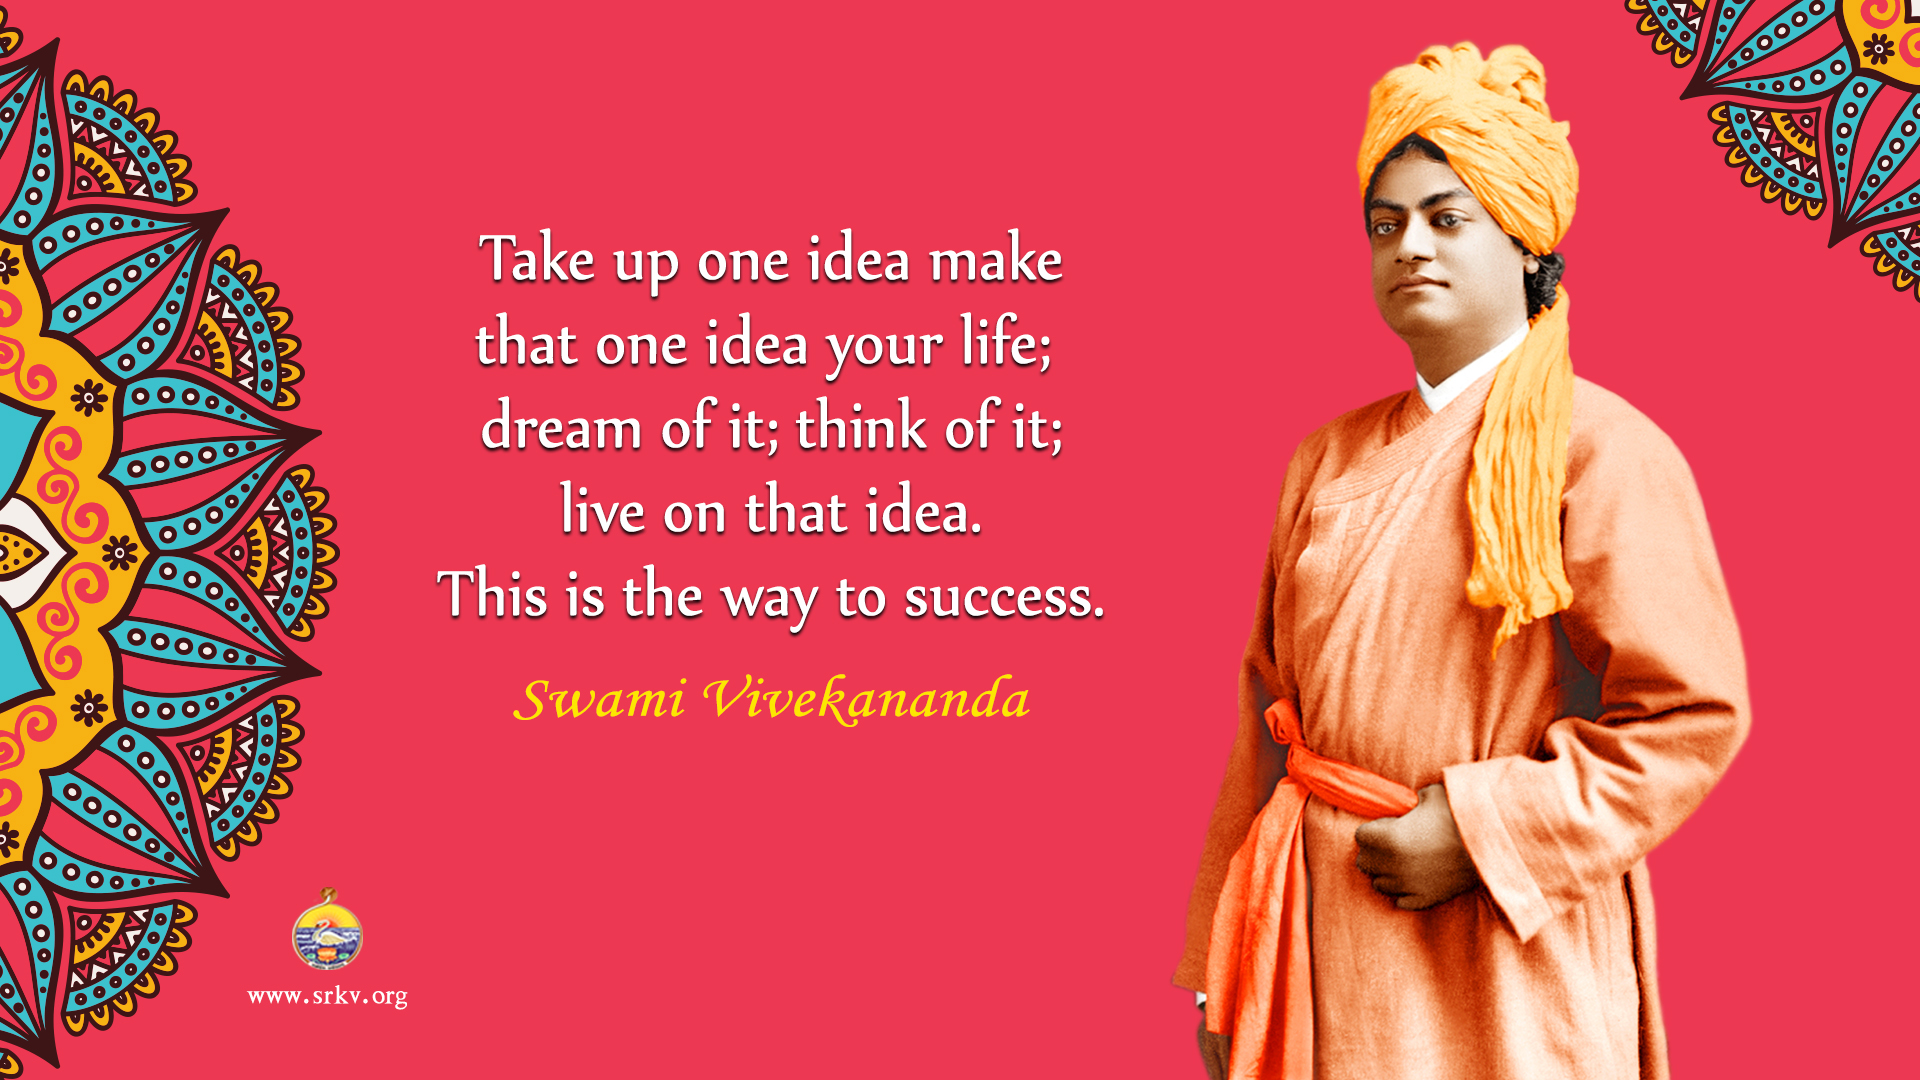 Wallpaper For Desktop   Swami Vivekananda 376006   HD Wallpaper 1920x1080